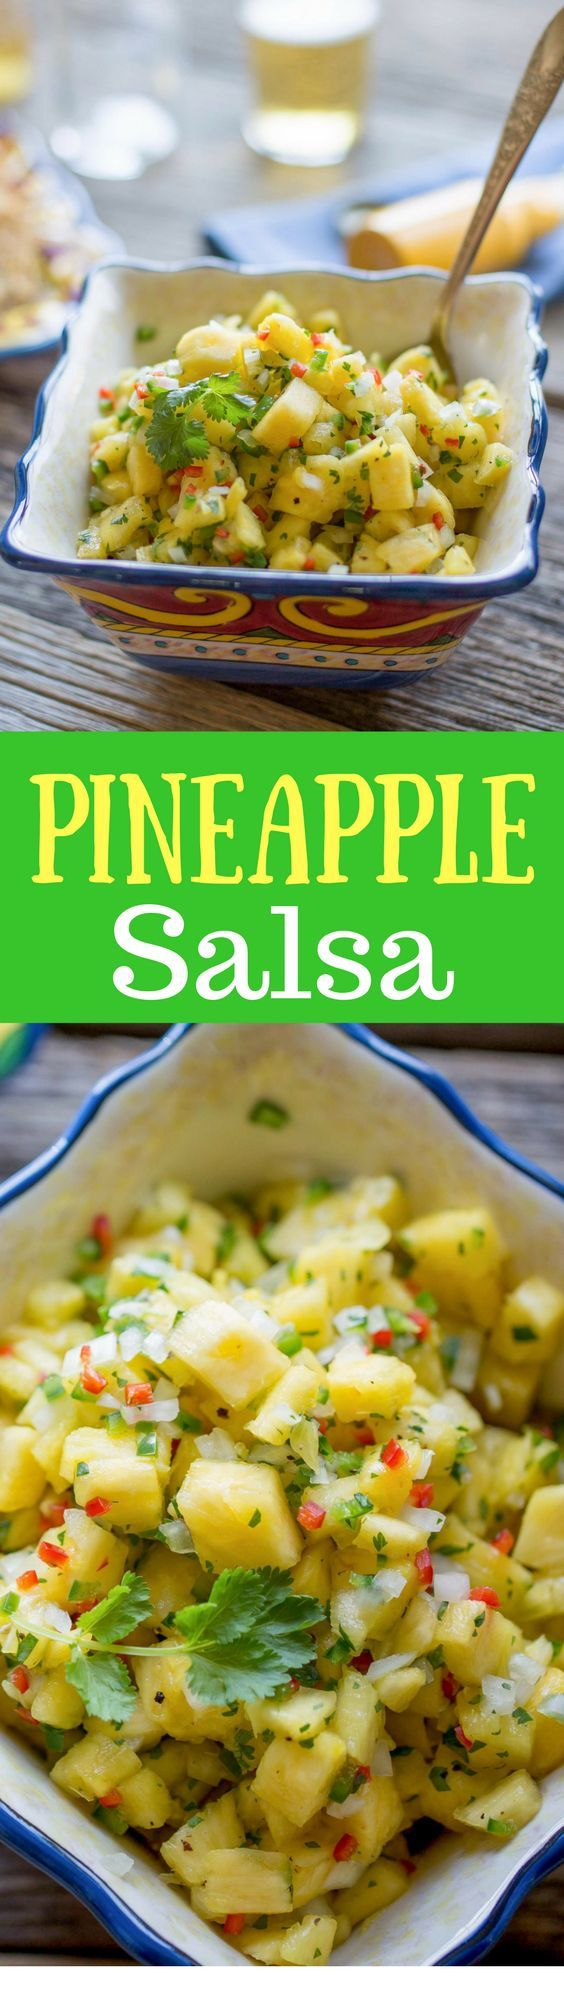 Easy & Fresh Pineapple Salsa - A wonderfully easy salsa that is great on tacos, grilled chicken, burritos or with a bag of chips.  www.savingdessert.com